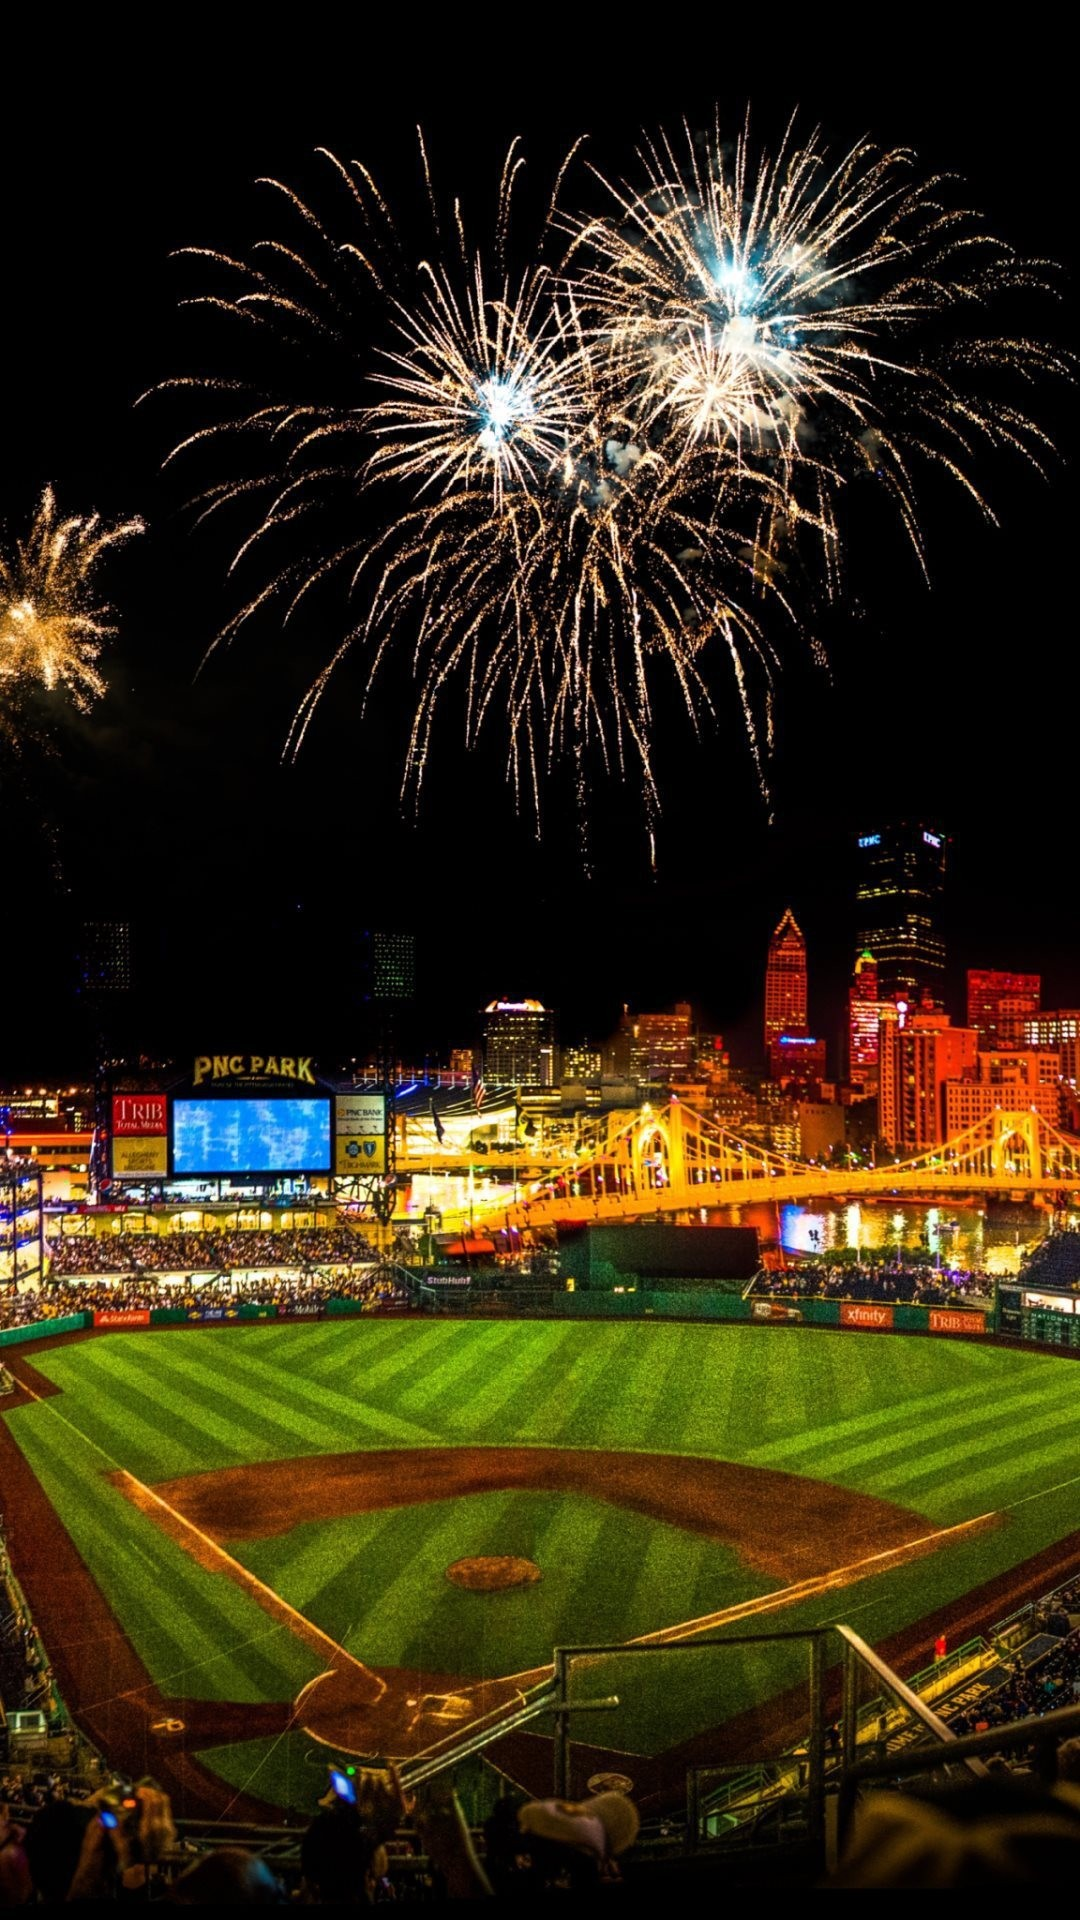 Baseball hd wallpapers for iphone 7 wallpapers baseball stadium with fireworks in the night voltagebd Image collections